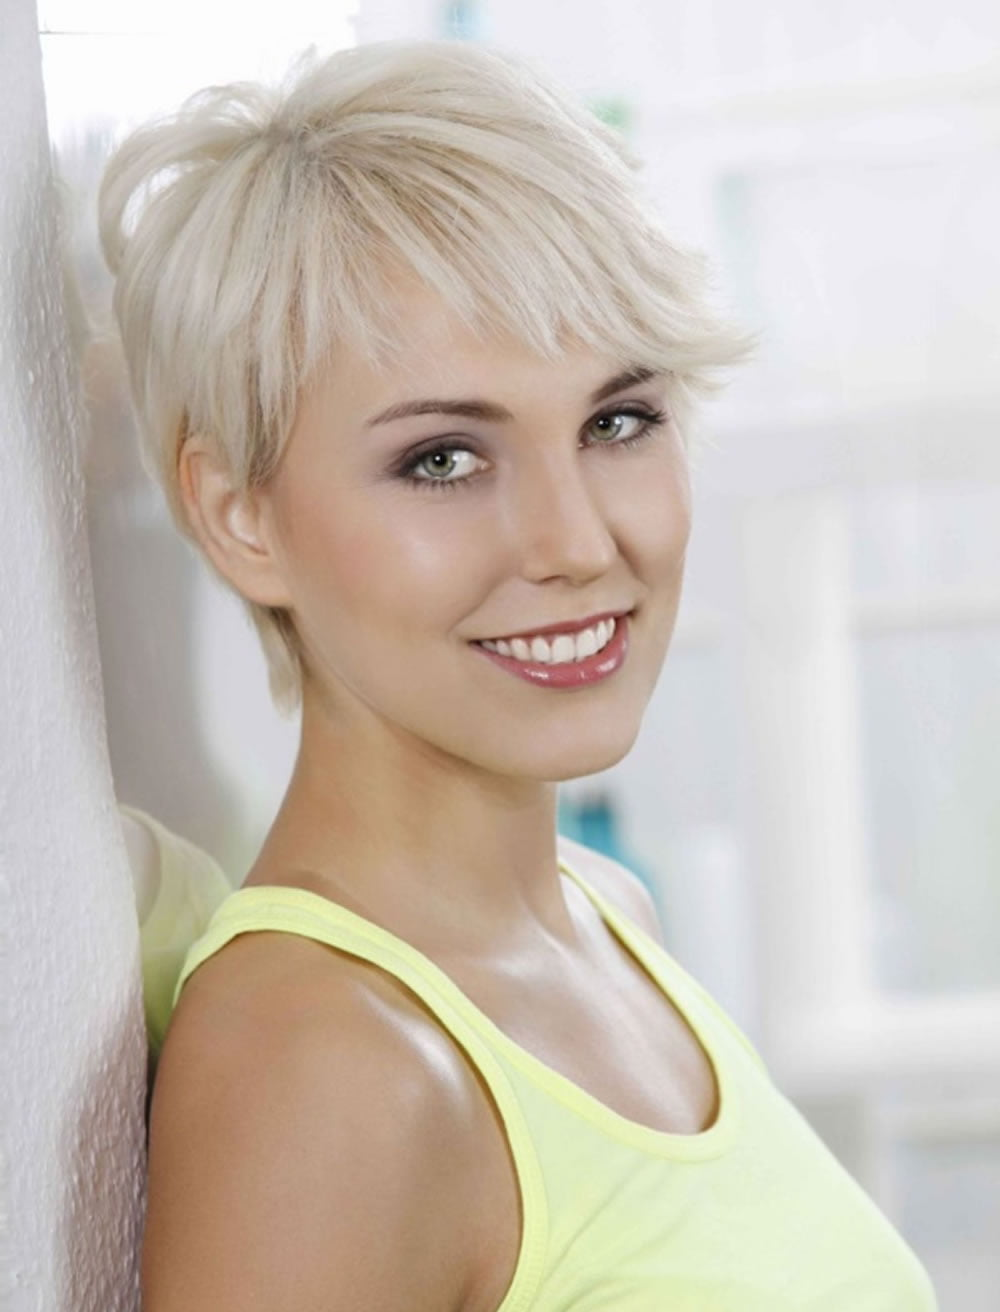 37 Amazing Short Hair Haircuts for Girls 2018-2019 – Page ...